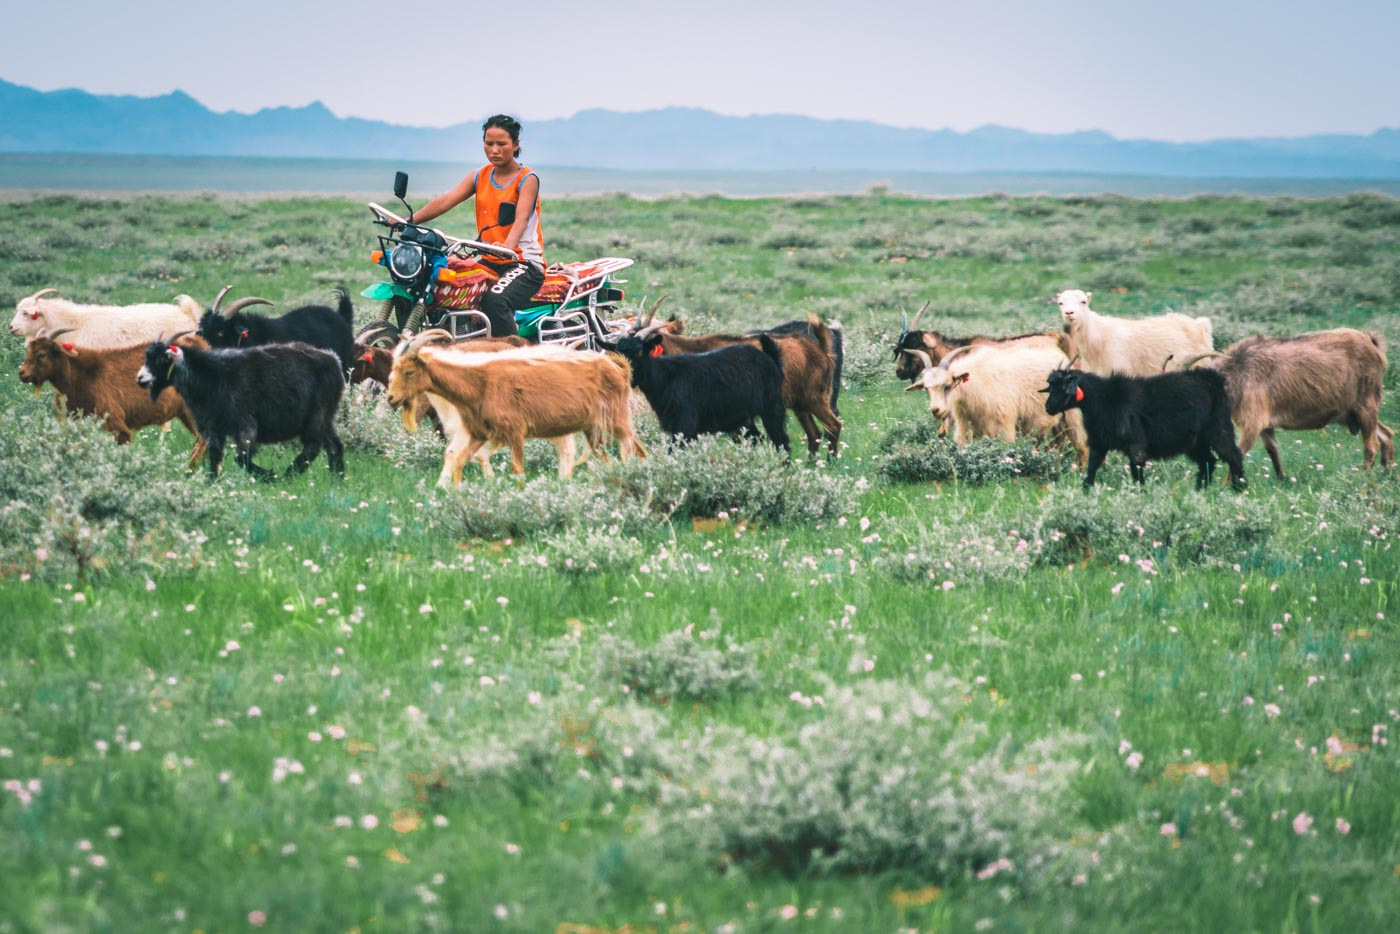 Local woman herding livestock on a motorcycle